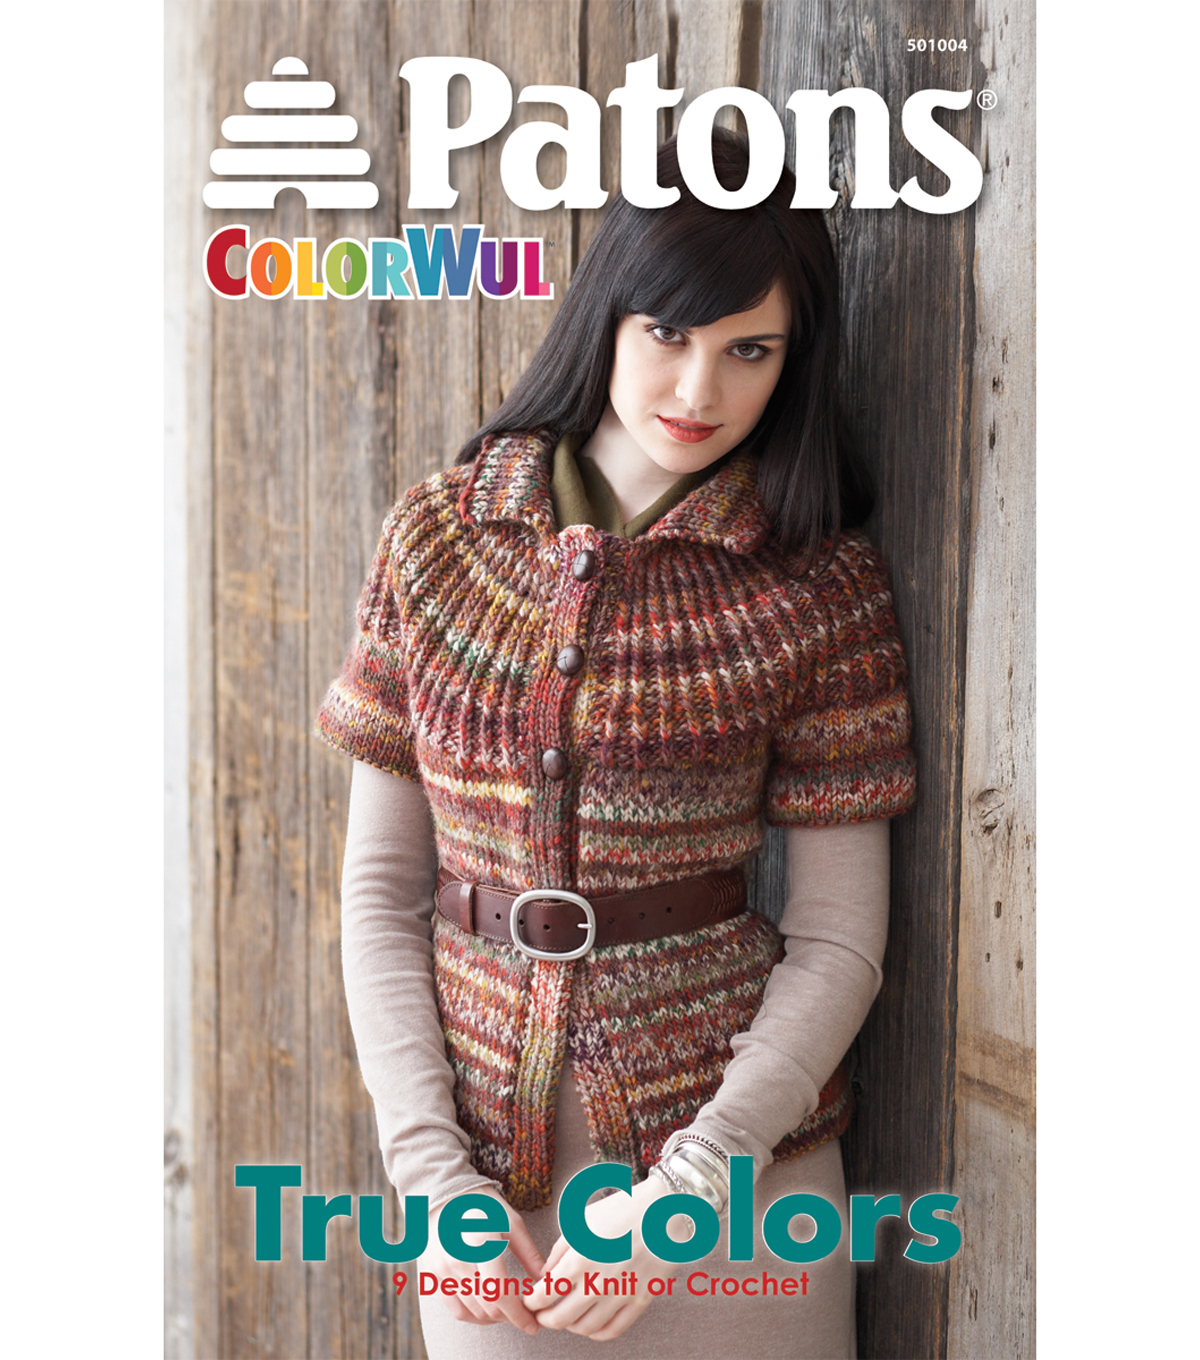 Patons True Colors-ColorWul Knitting Book